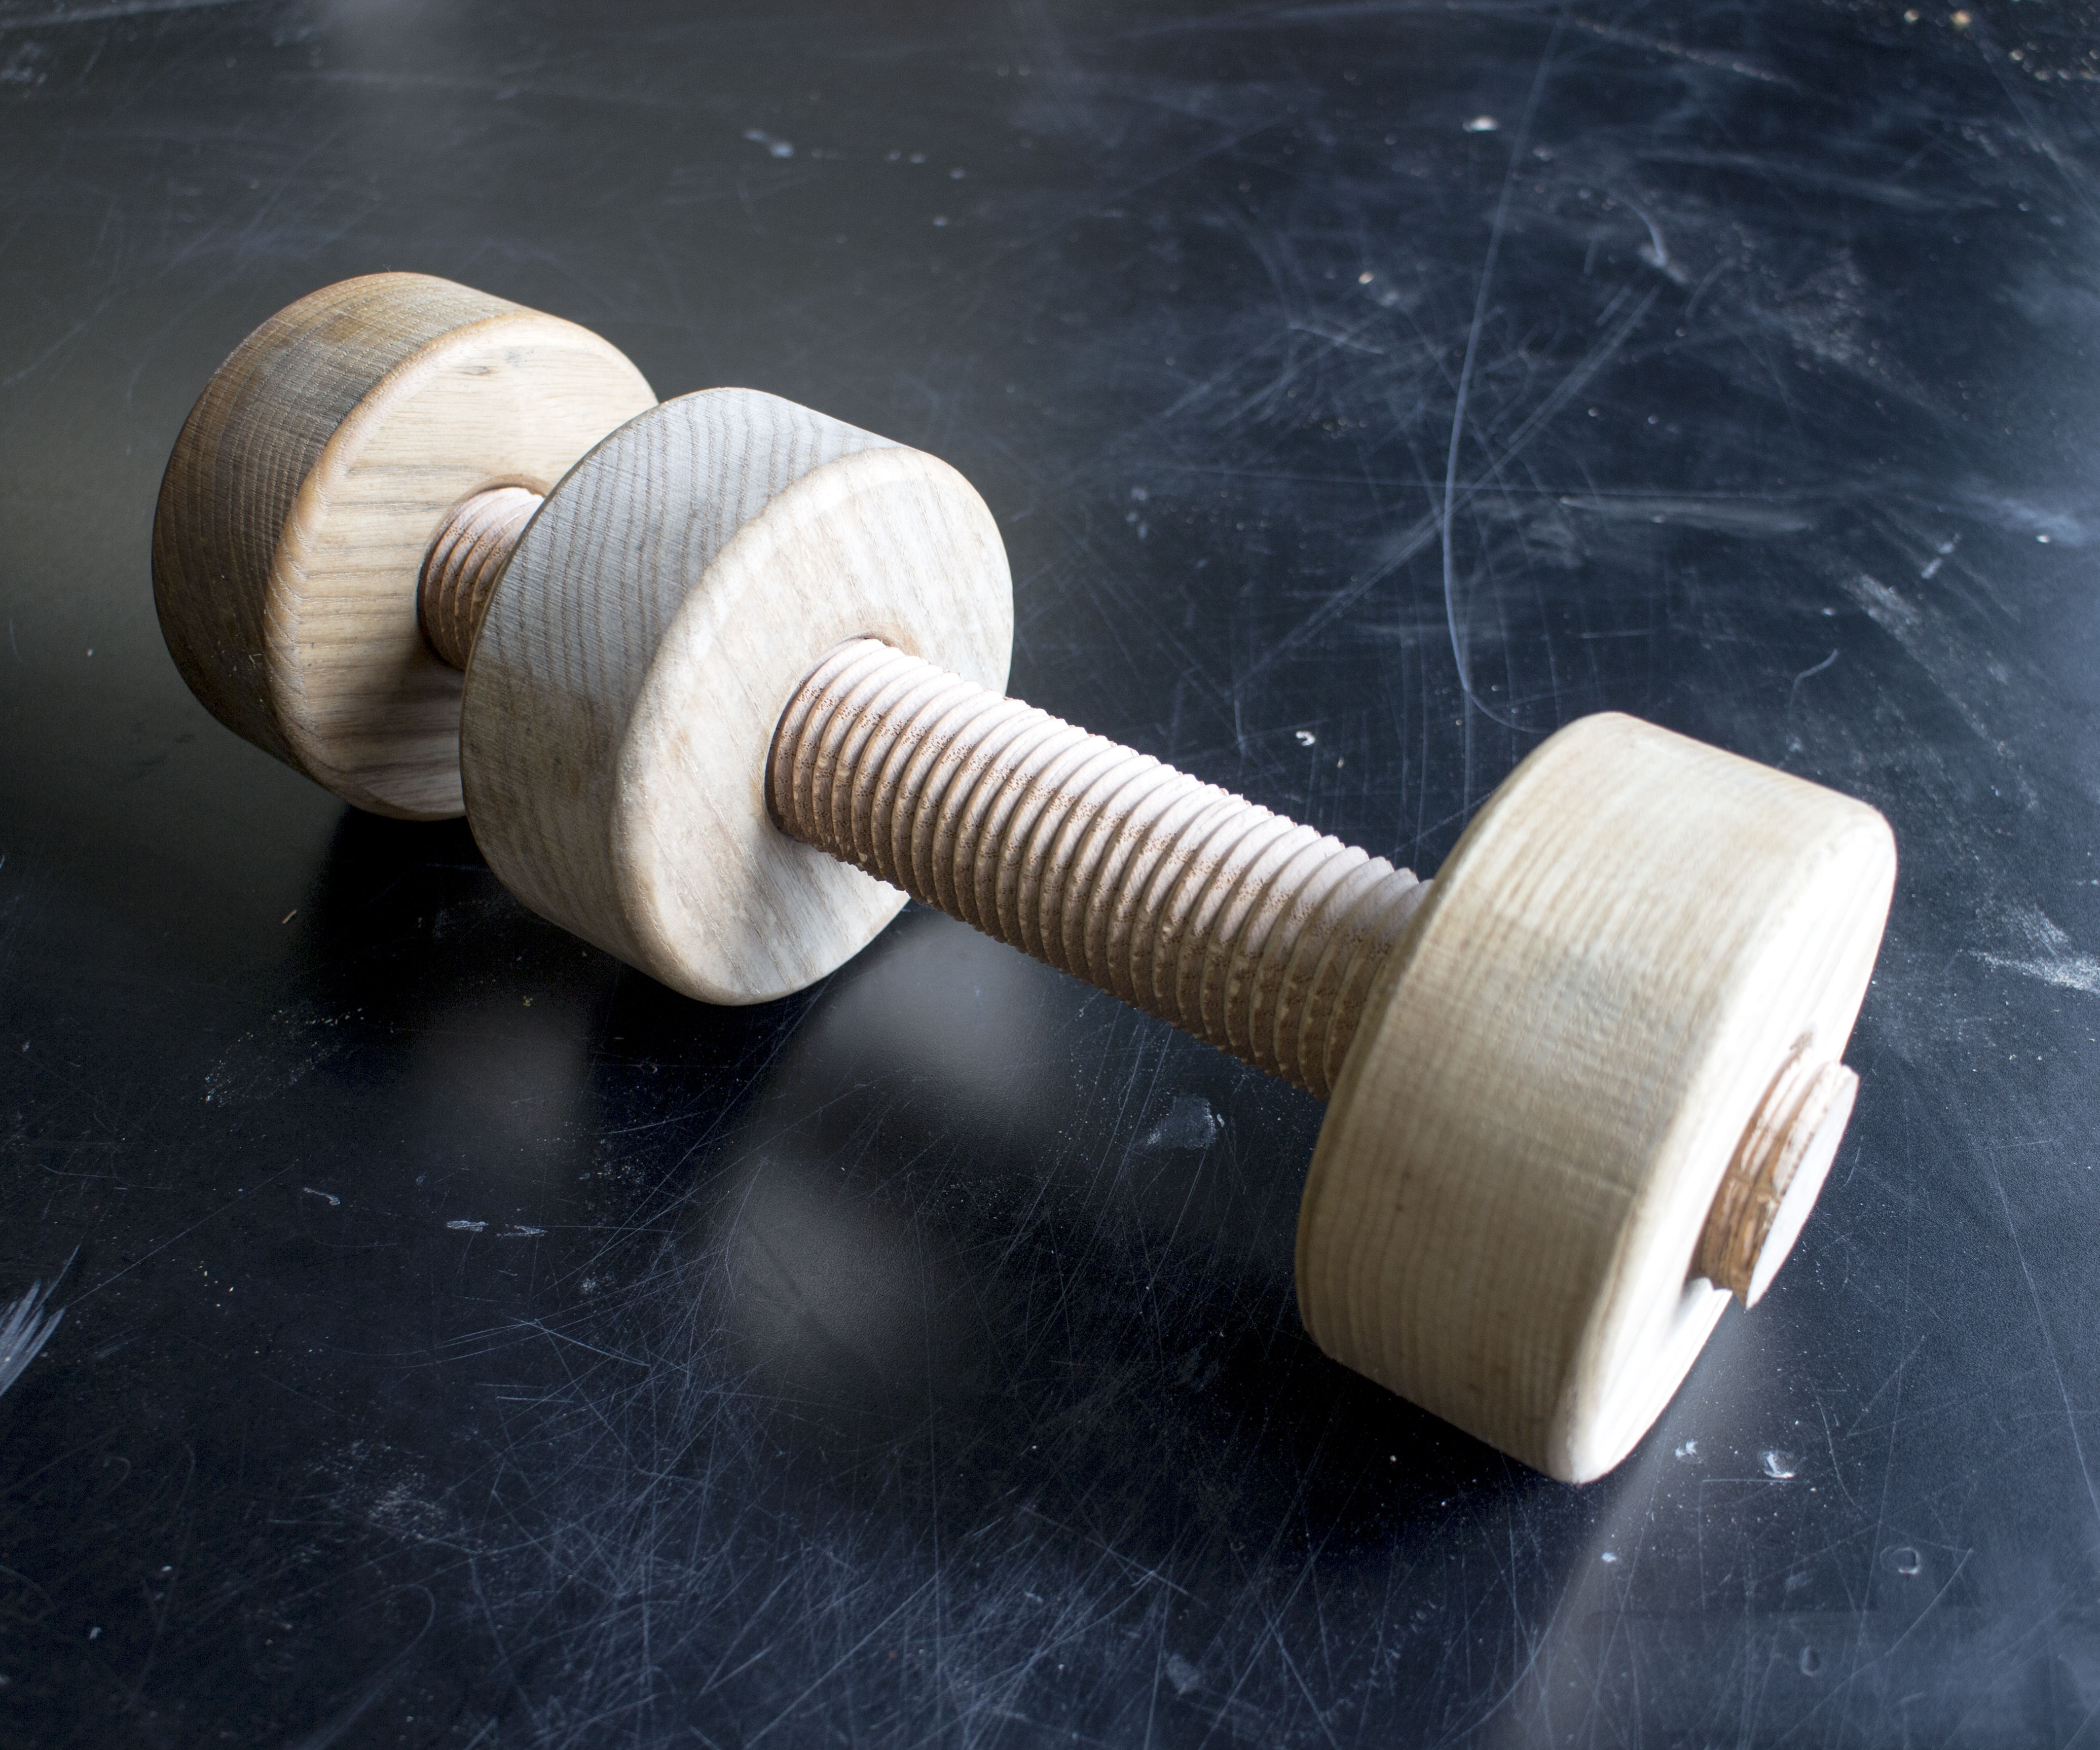 Technique: Wooden Nuts & Bolts